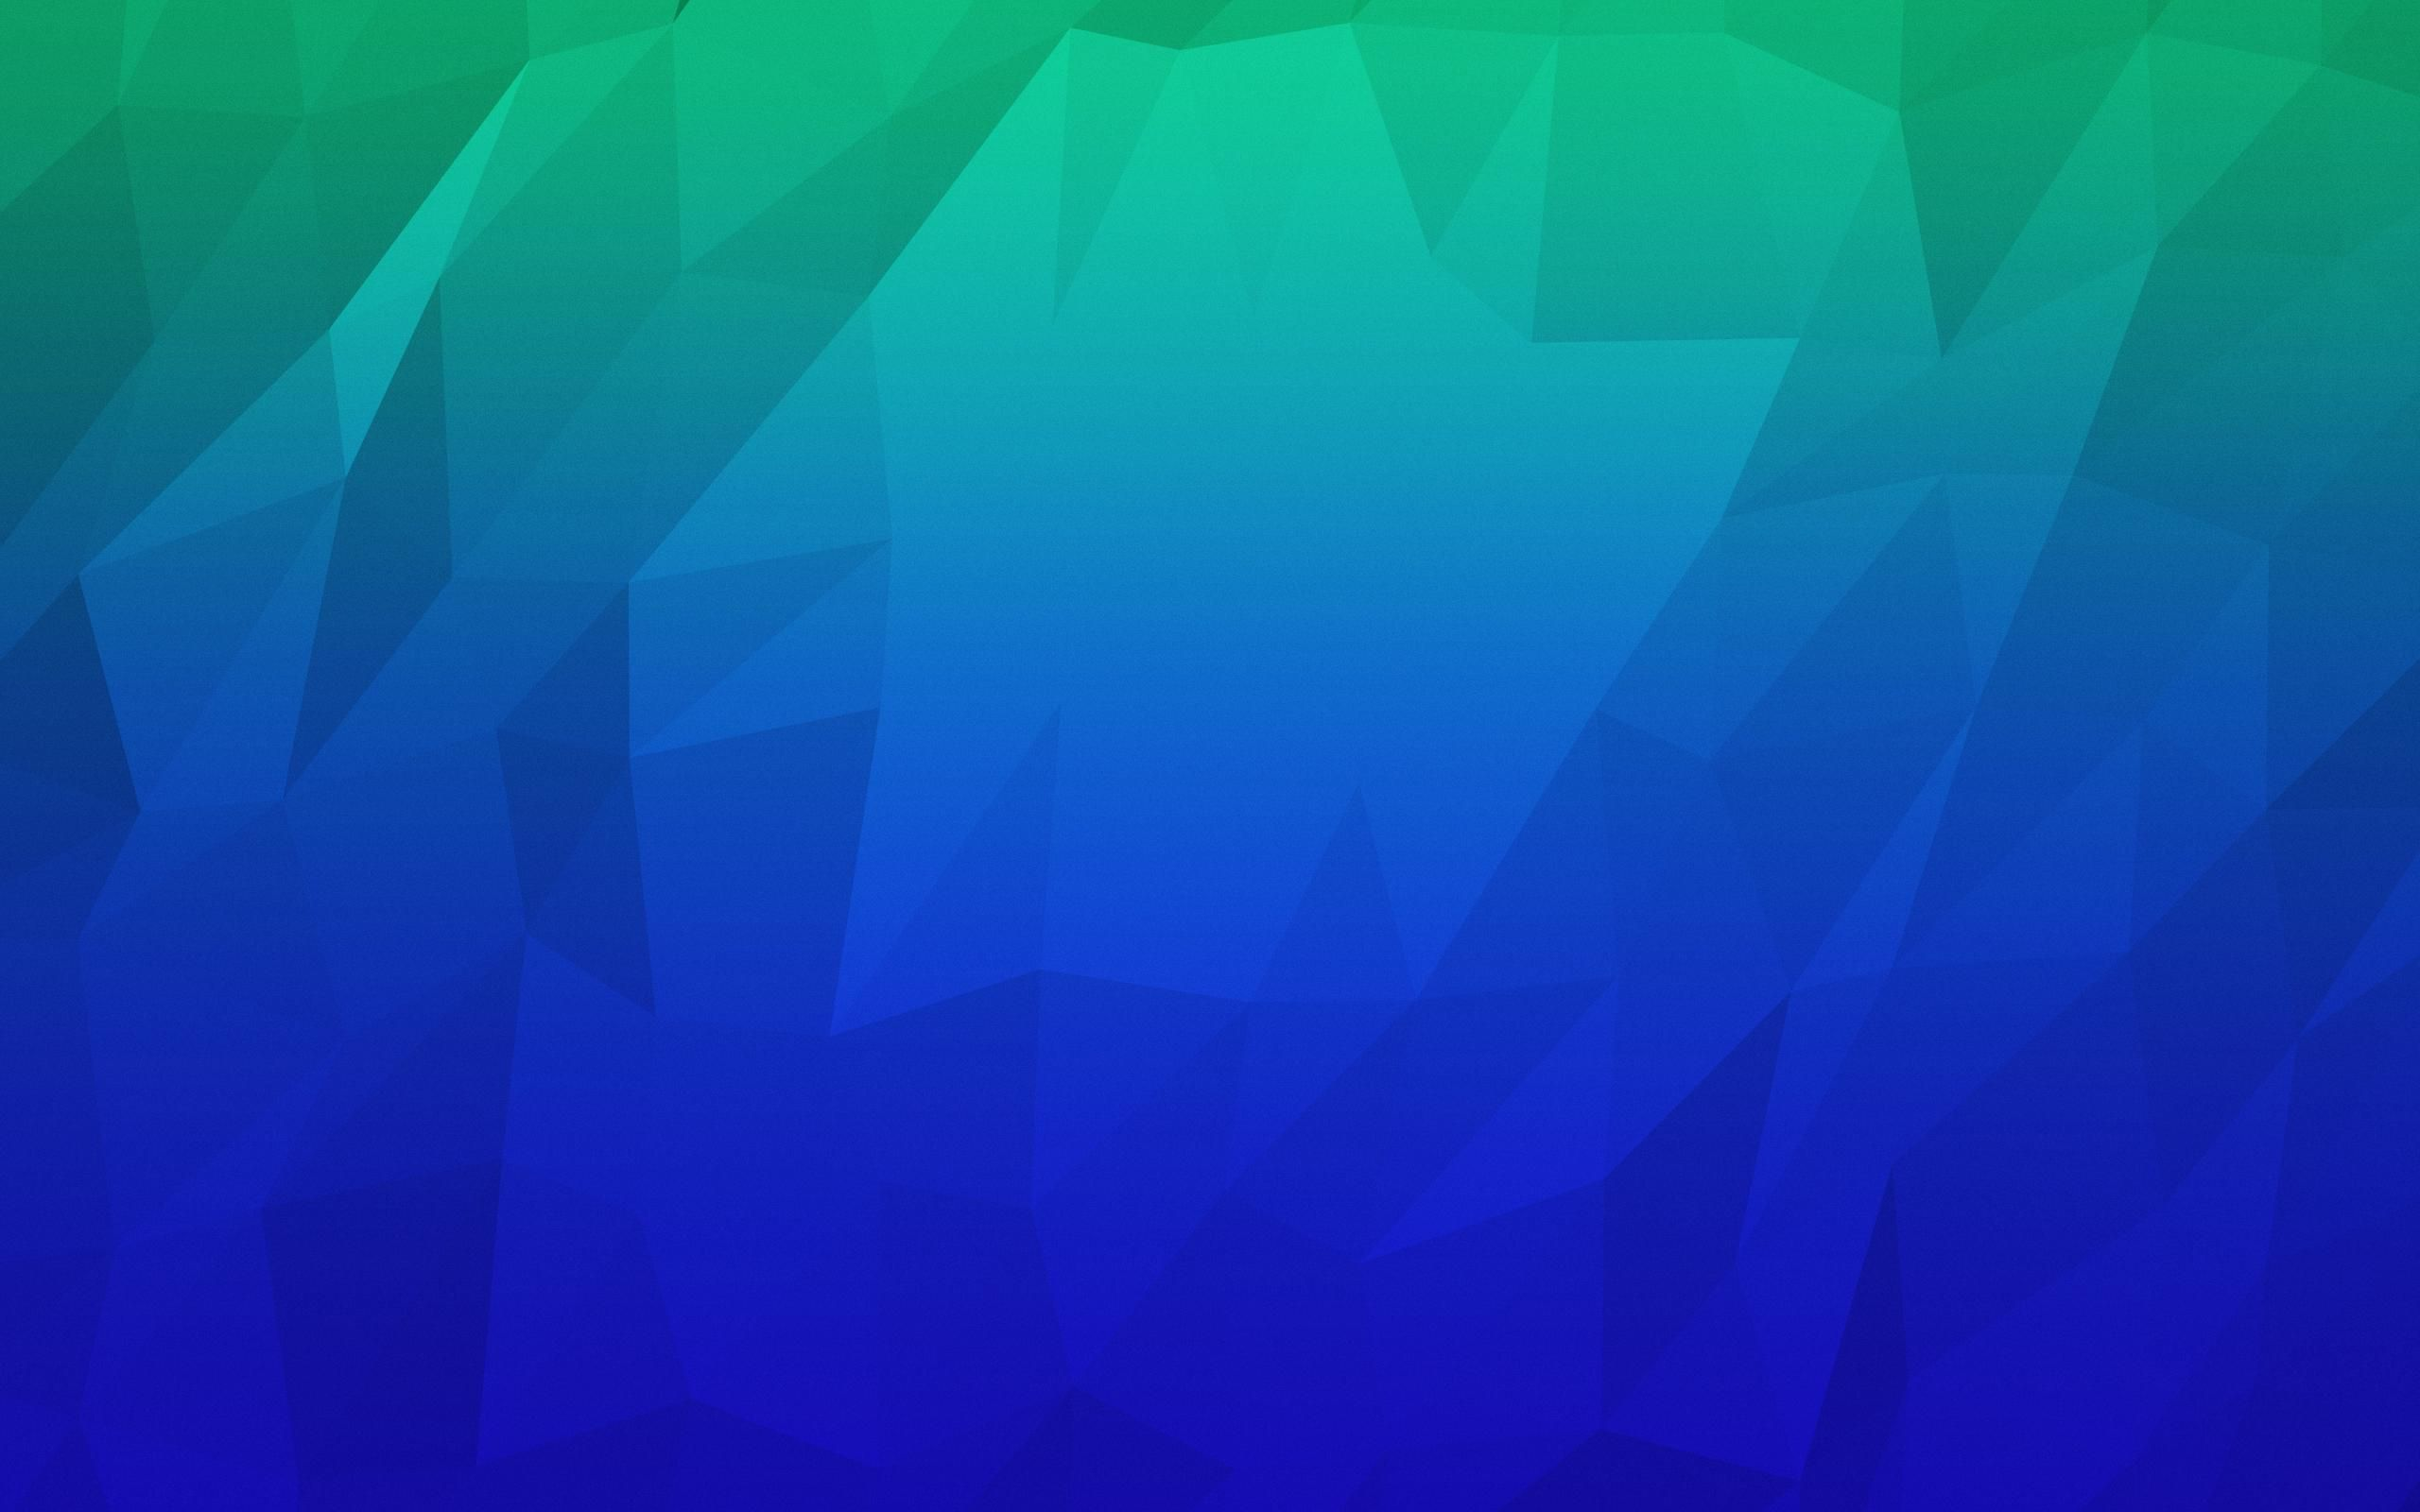 Blue And Green Abstract Wallpapers 4k Hd Blue And Green Abstract Backgrounds On Wallpaperbat